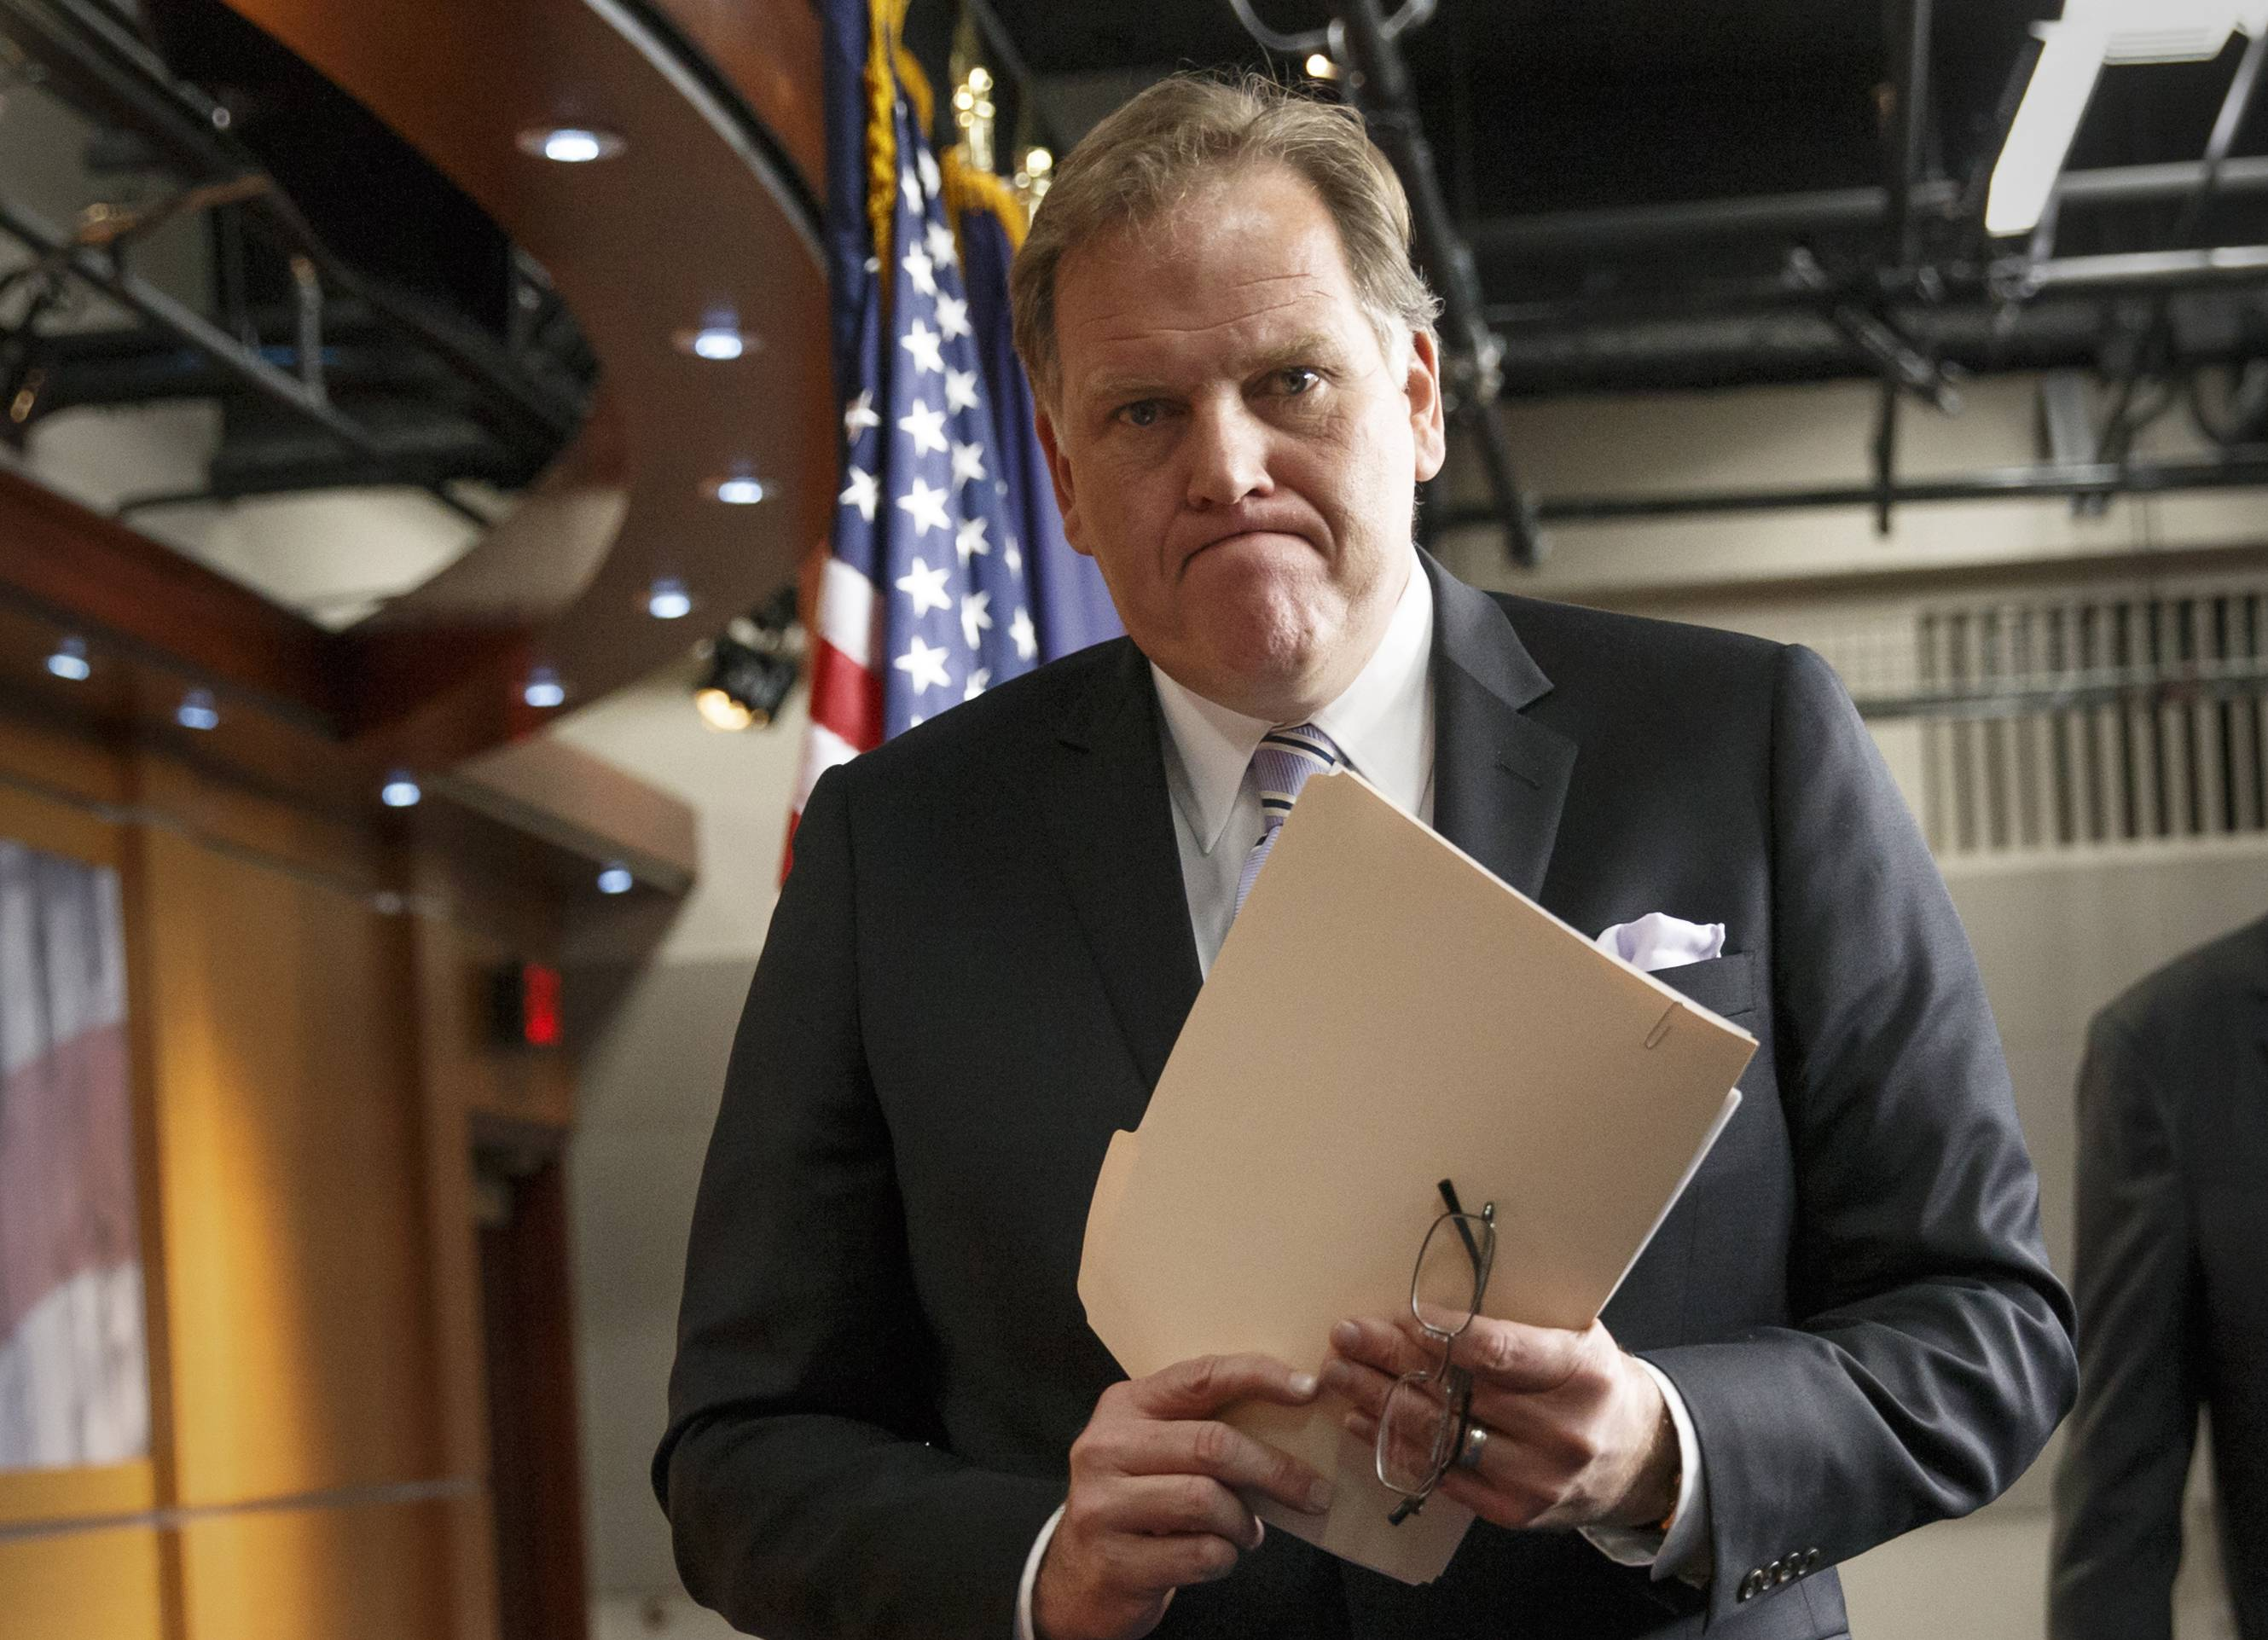 House Intelligence Committee Chairman Mike Rogers, a Michigan Republican, prodded President Barack Obama on Sunday to take decisive action against the growing threats from Islamic State militants on U.S. soil.